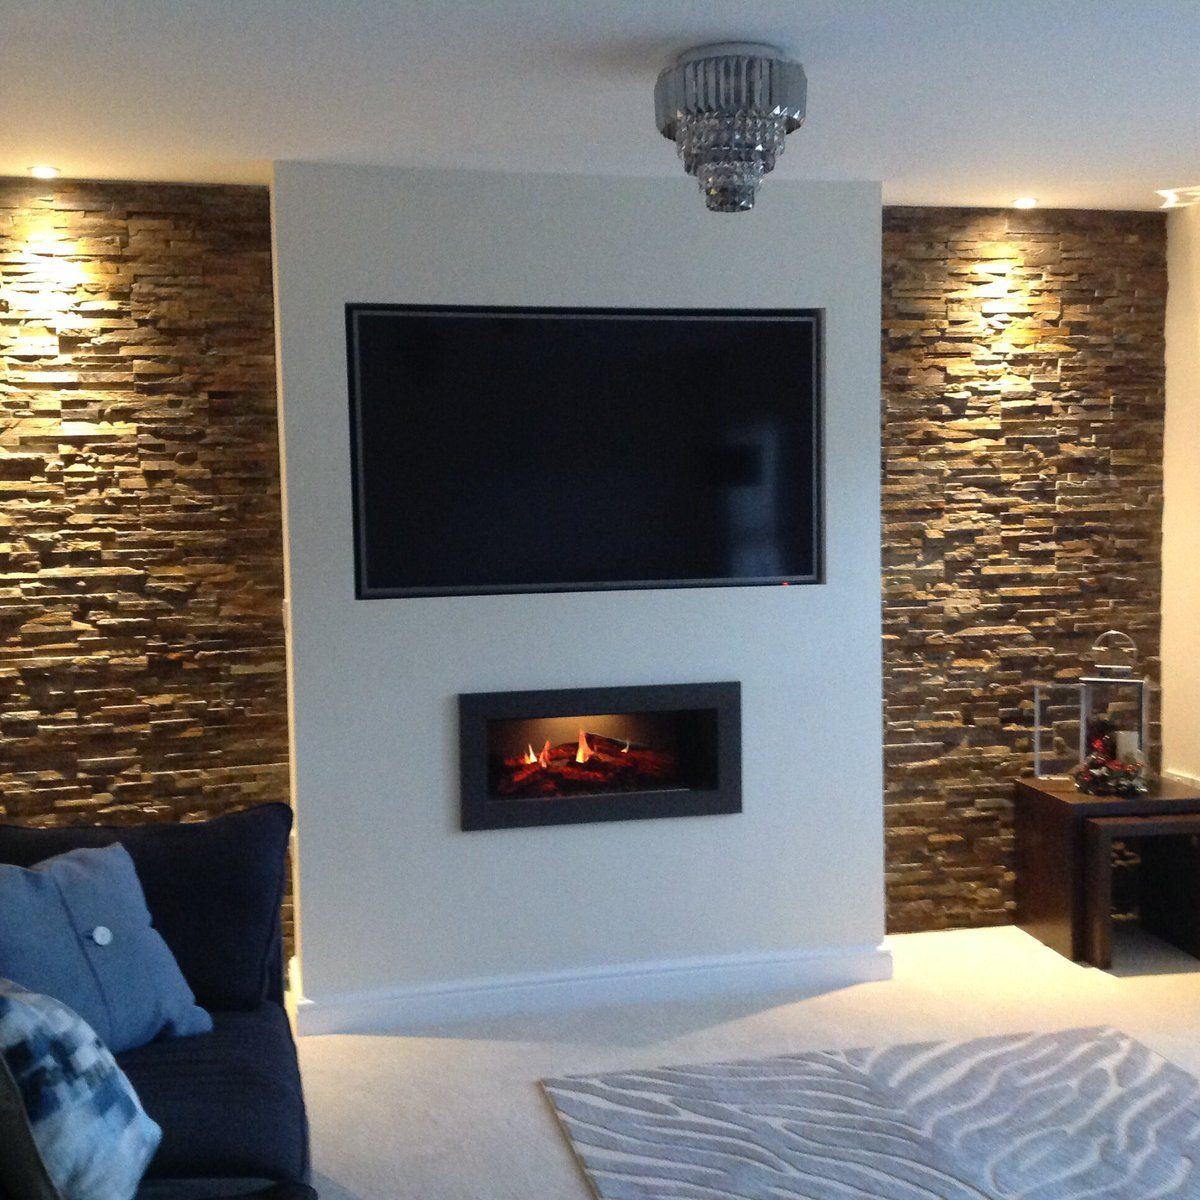 Opti V Installation At A New Property In Doncaster Homeinspo Interiordesign Fake Walls Bedroom Tv Wall Living Room Tv Wall